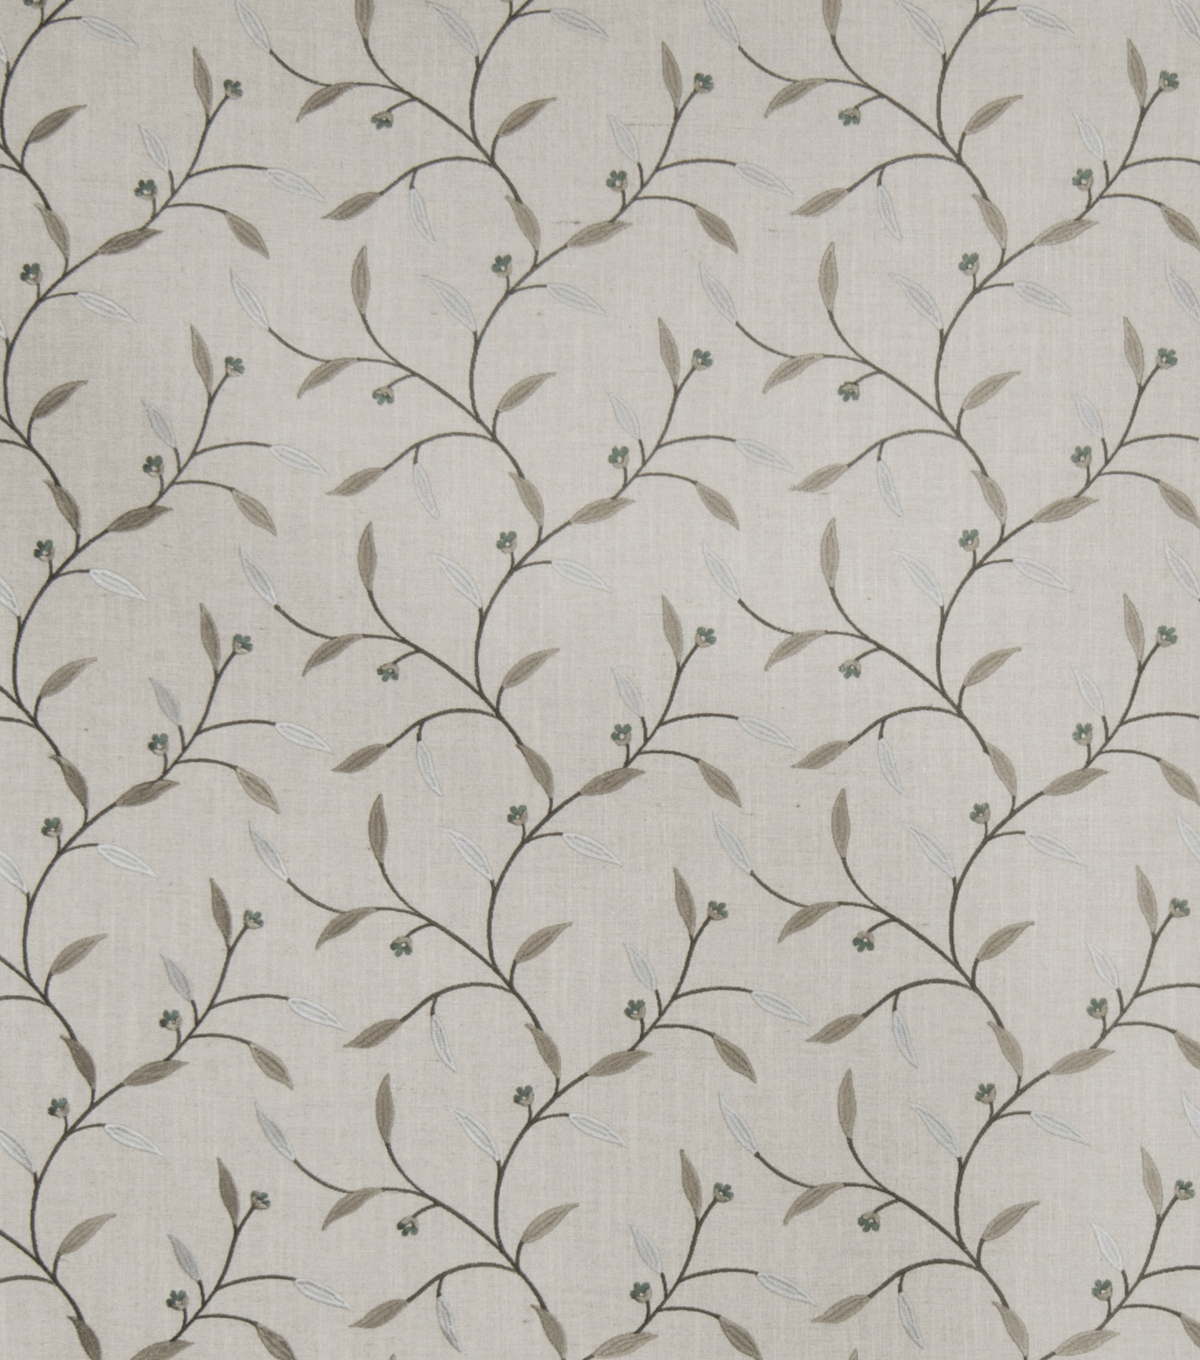 Home Decor 8x8 Fabric Swatch-Swavelle Millcreek Single Mineral